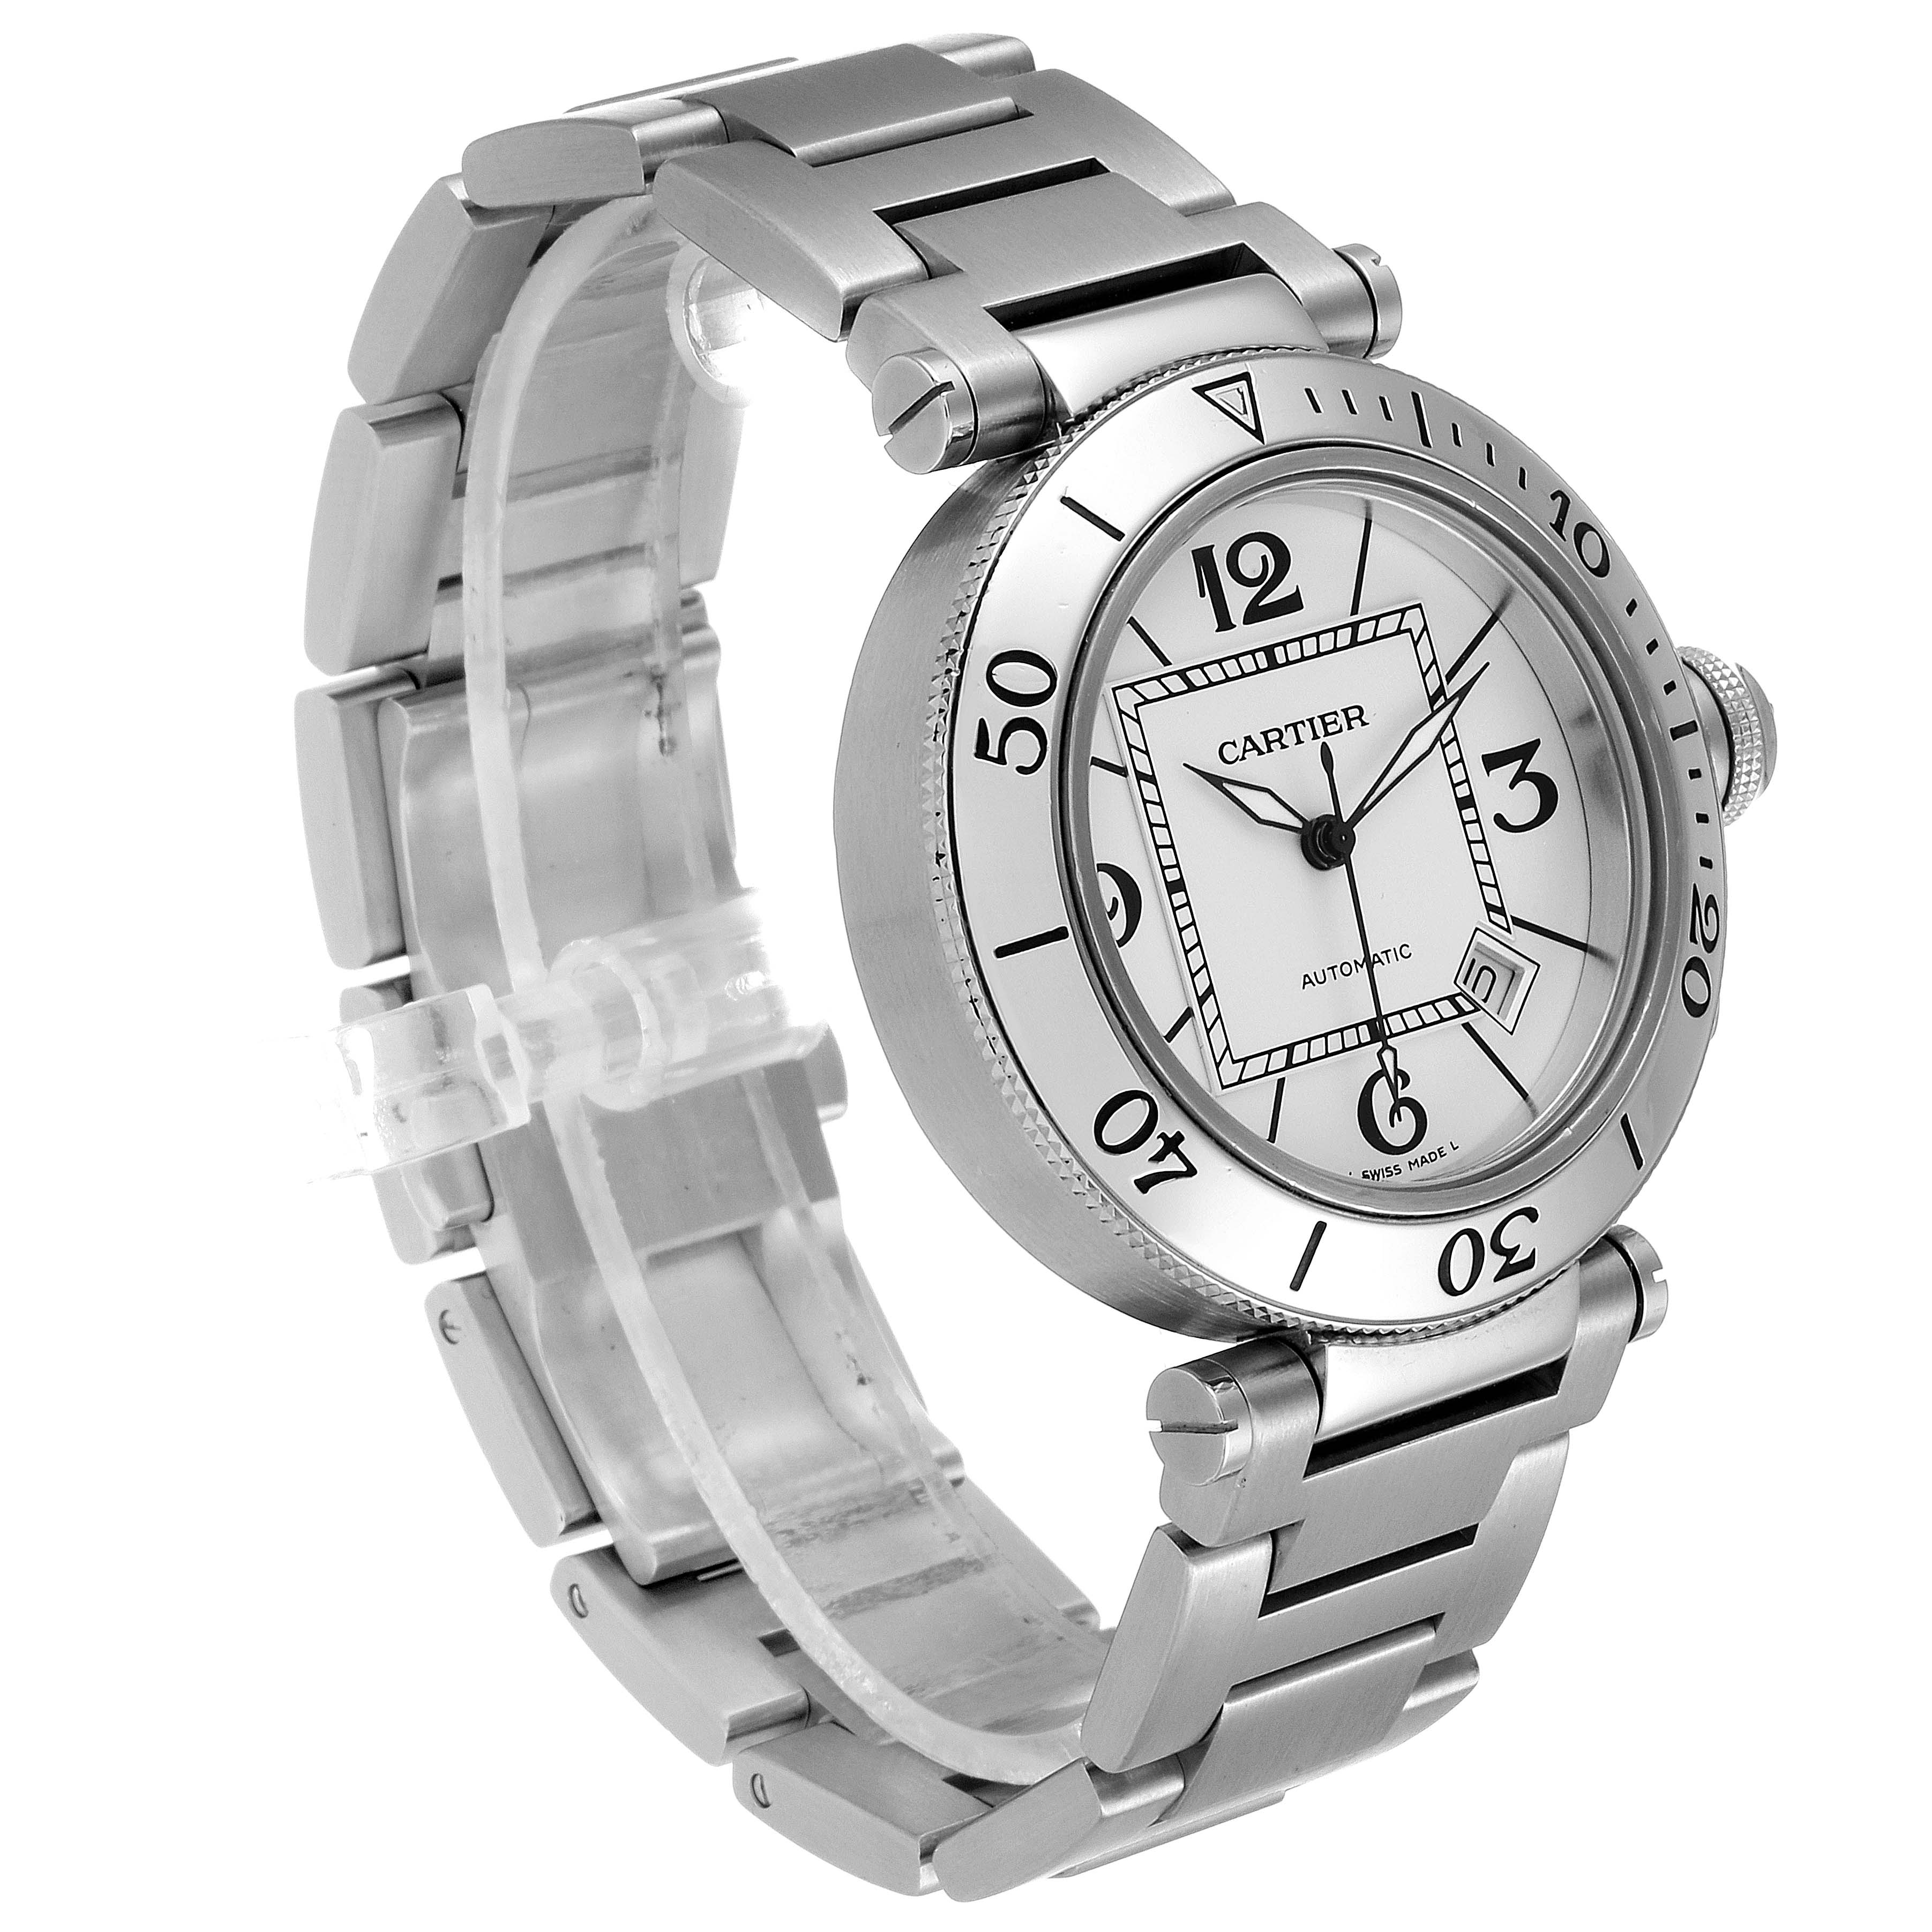 Cartier Pasha Seatimer Stainless Steel Silver Dial Mens Watch W31080M7 Box SwissWatchExpo